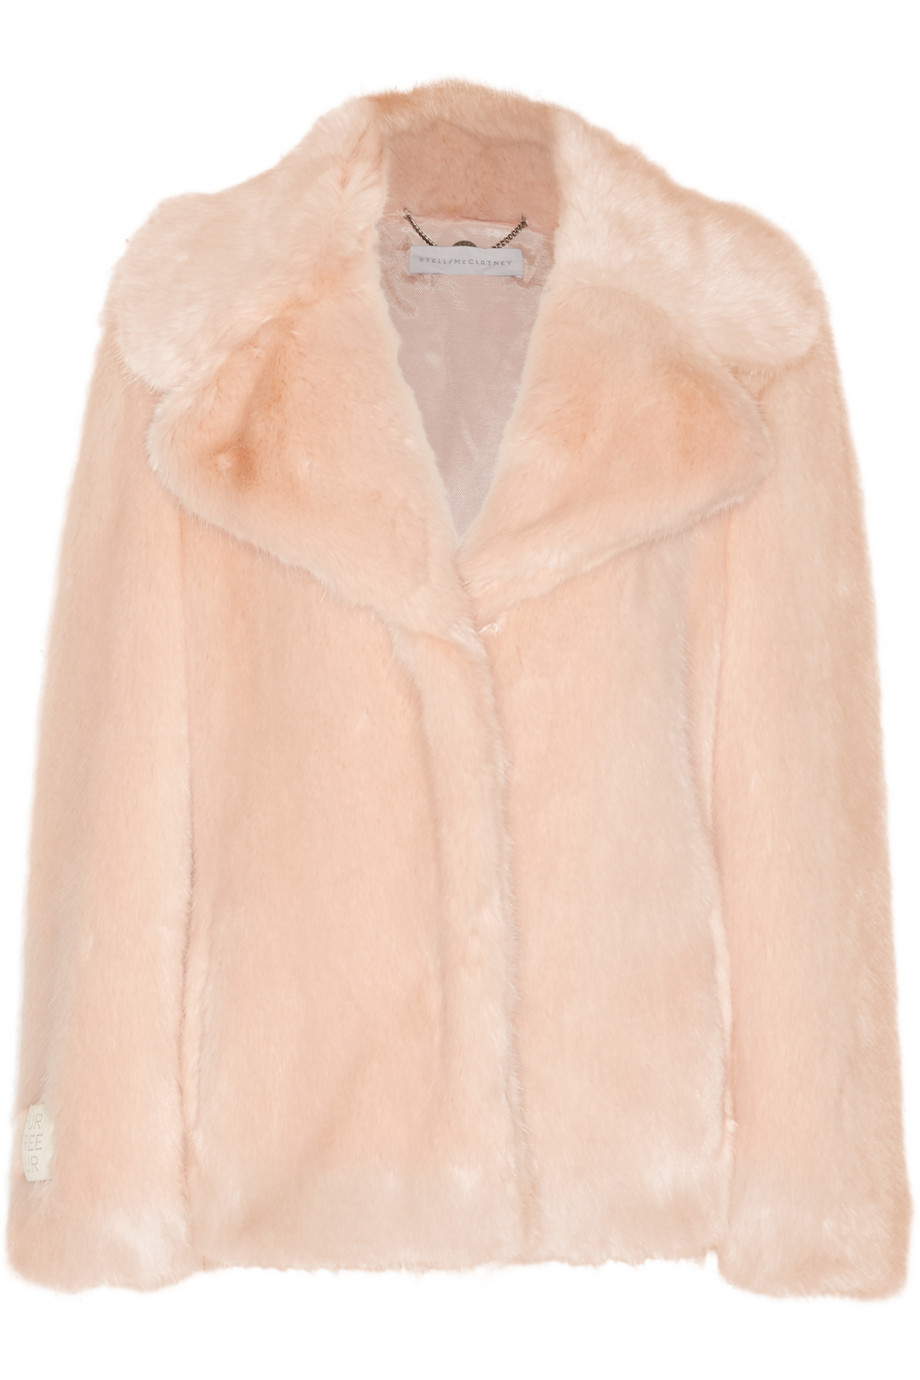 Stella Mccartney Faux Fur Coat, Blush, Women's, Size: 38